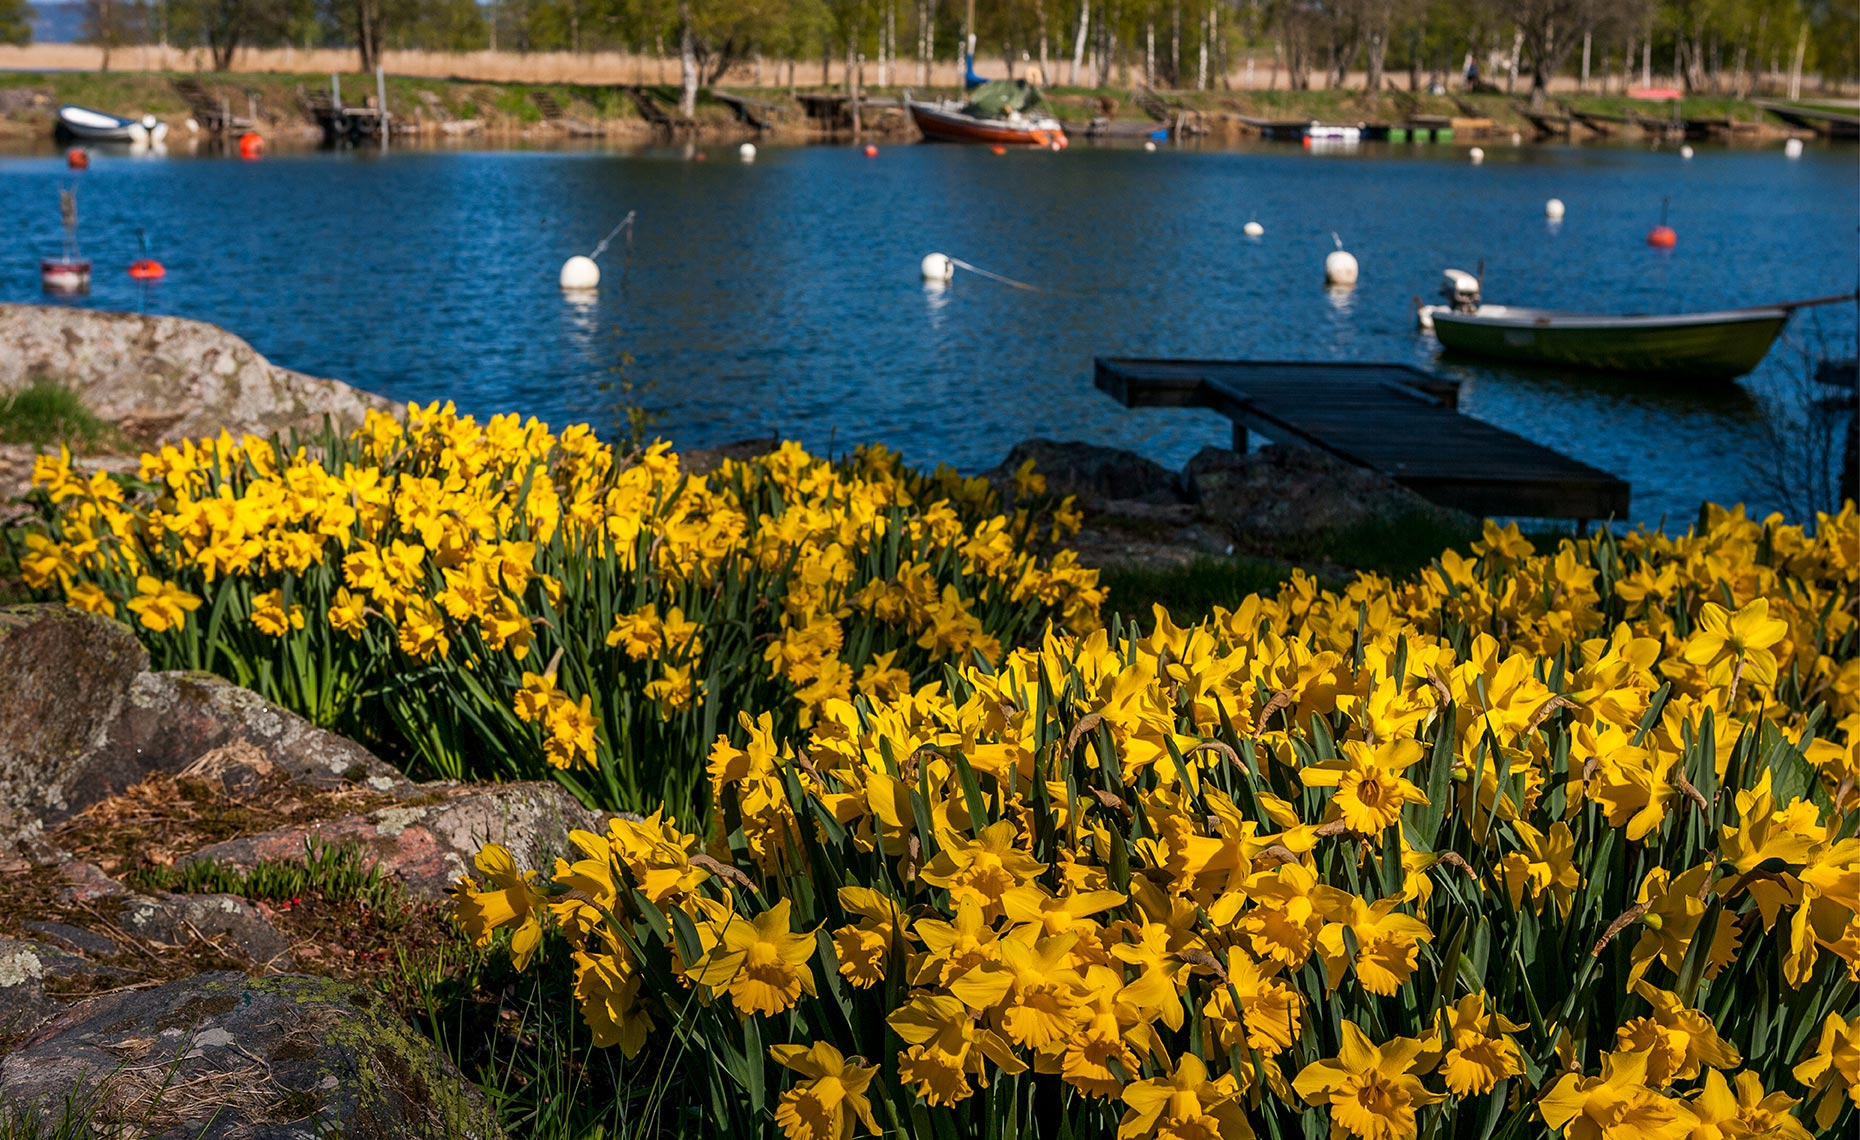 46_Gothenburg_Goteburg_Vanersborg_Lake_Vaner_Sweden_Downtown_Environment_Landscape_Chris_Wellhausen_Photography.JPG